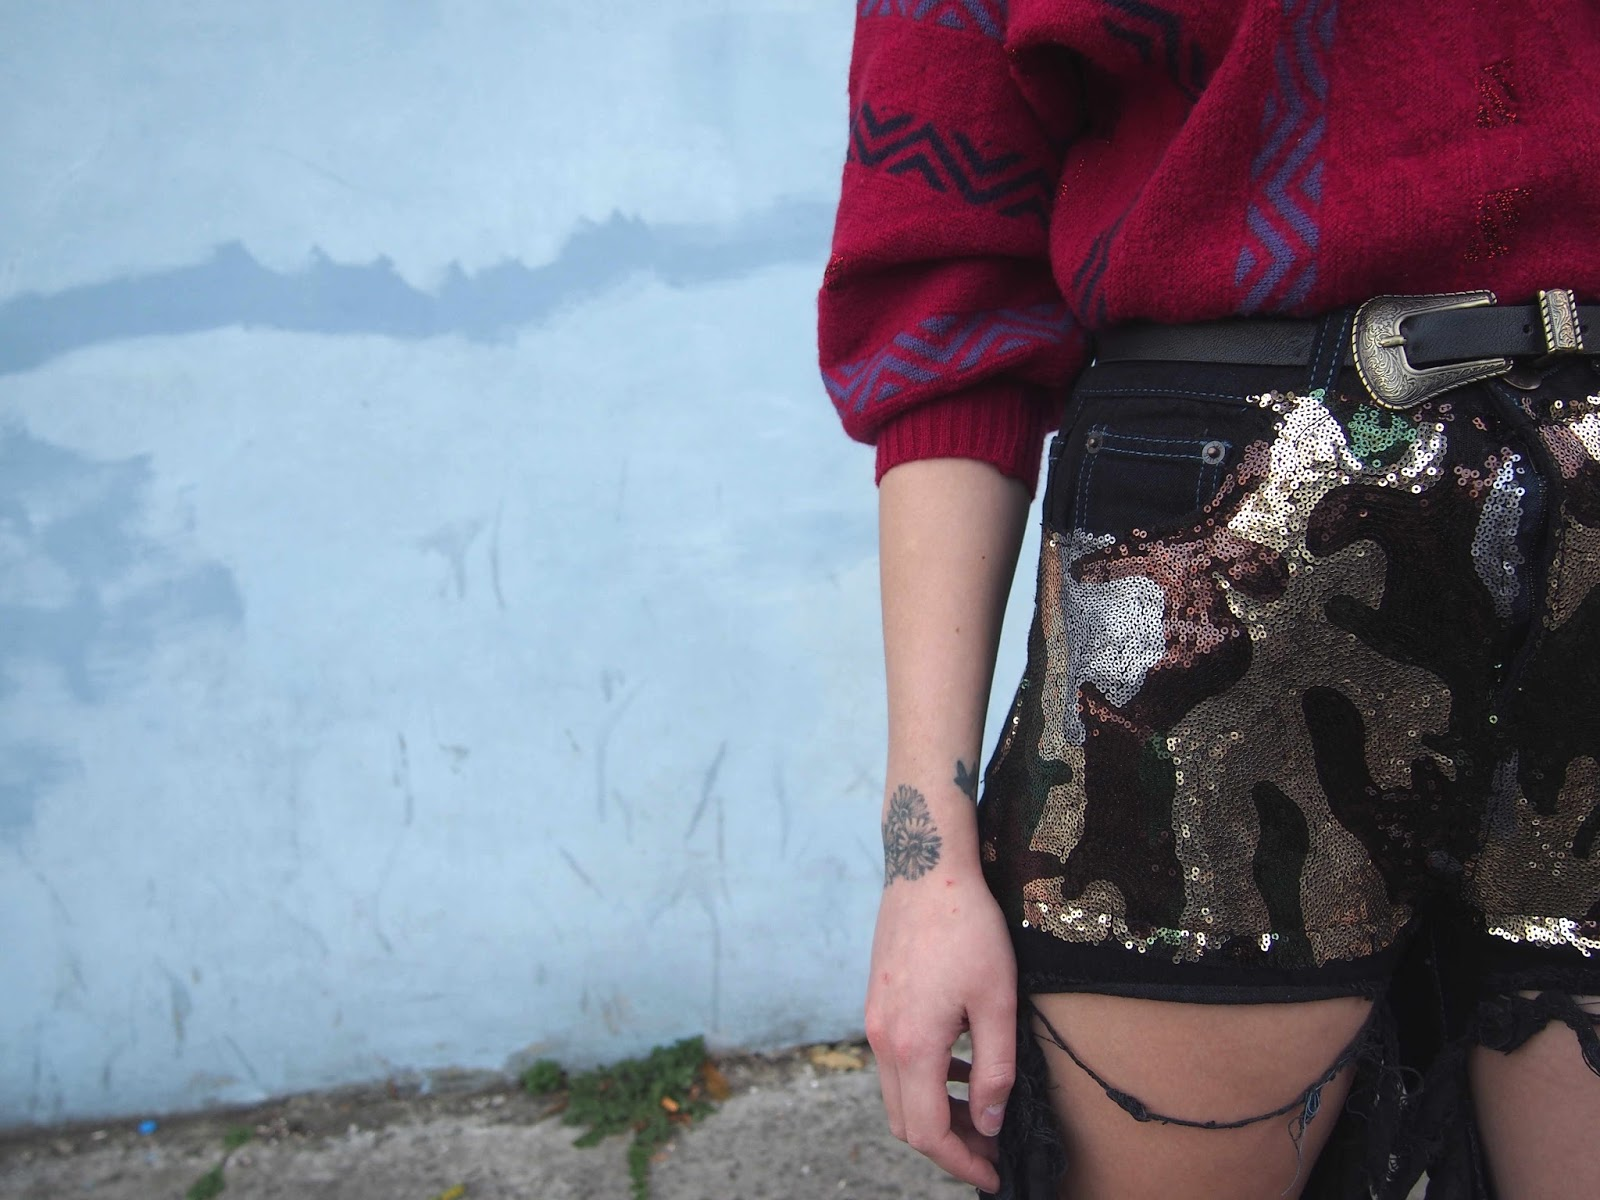 liquor n poker jeans, liquor and poker jeans, vintage oversized jumper, sequin jeans, camo sequin jeans, autumn alternative grunge 90's fashion style inspiration 1